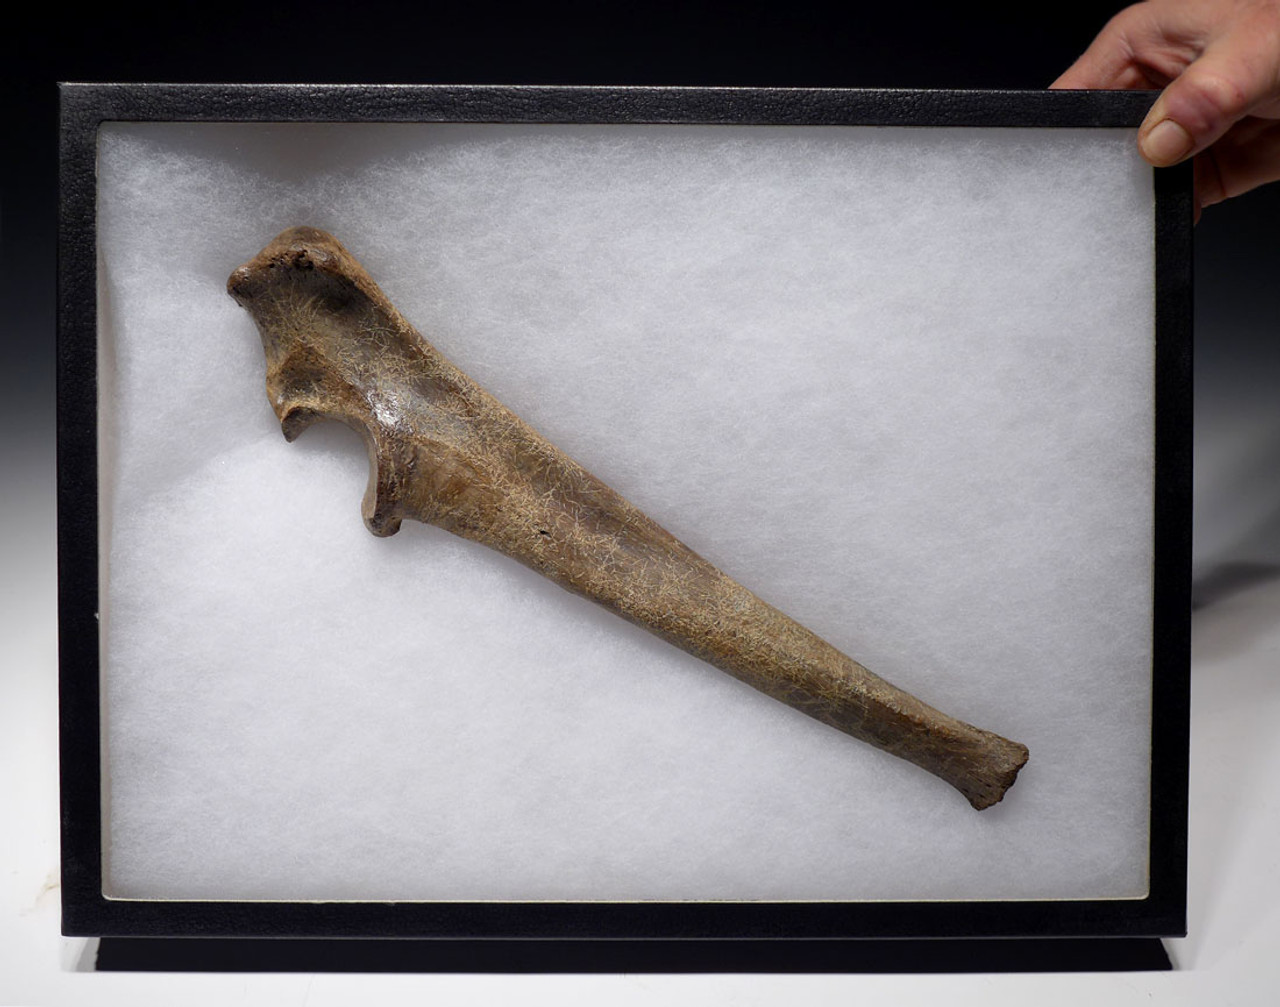 LMX106 - MUSEUM-CLASS CAVE LION COMPLETE INTACT ULNA ARM BONE FROM EUROPE